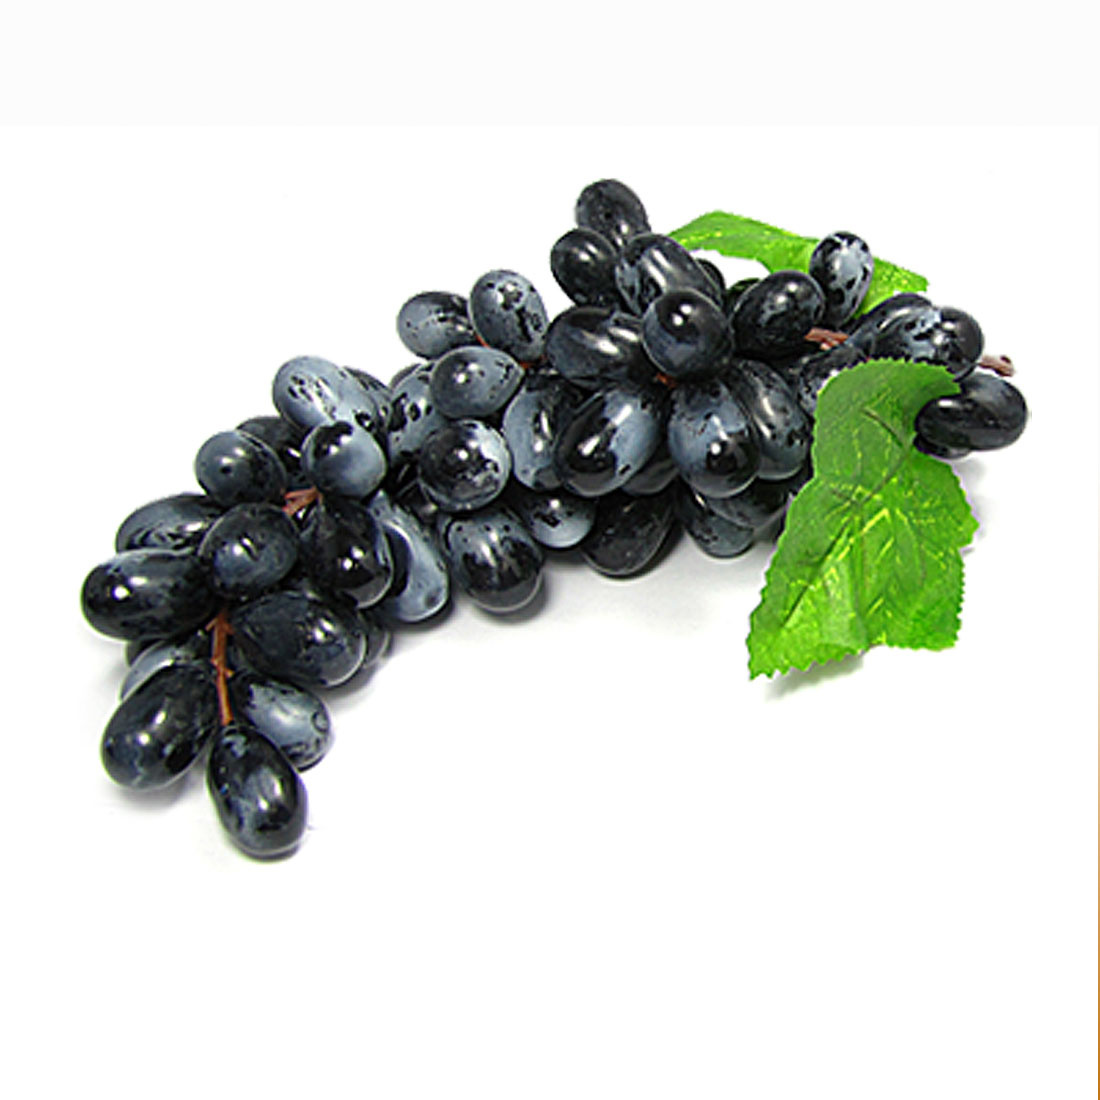 Soft Plastic Bunch Grapes Living Room Desk Black Decor